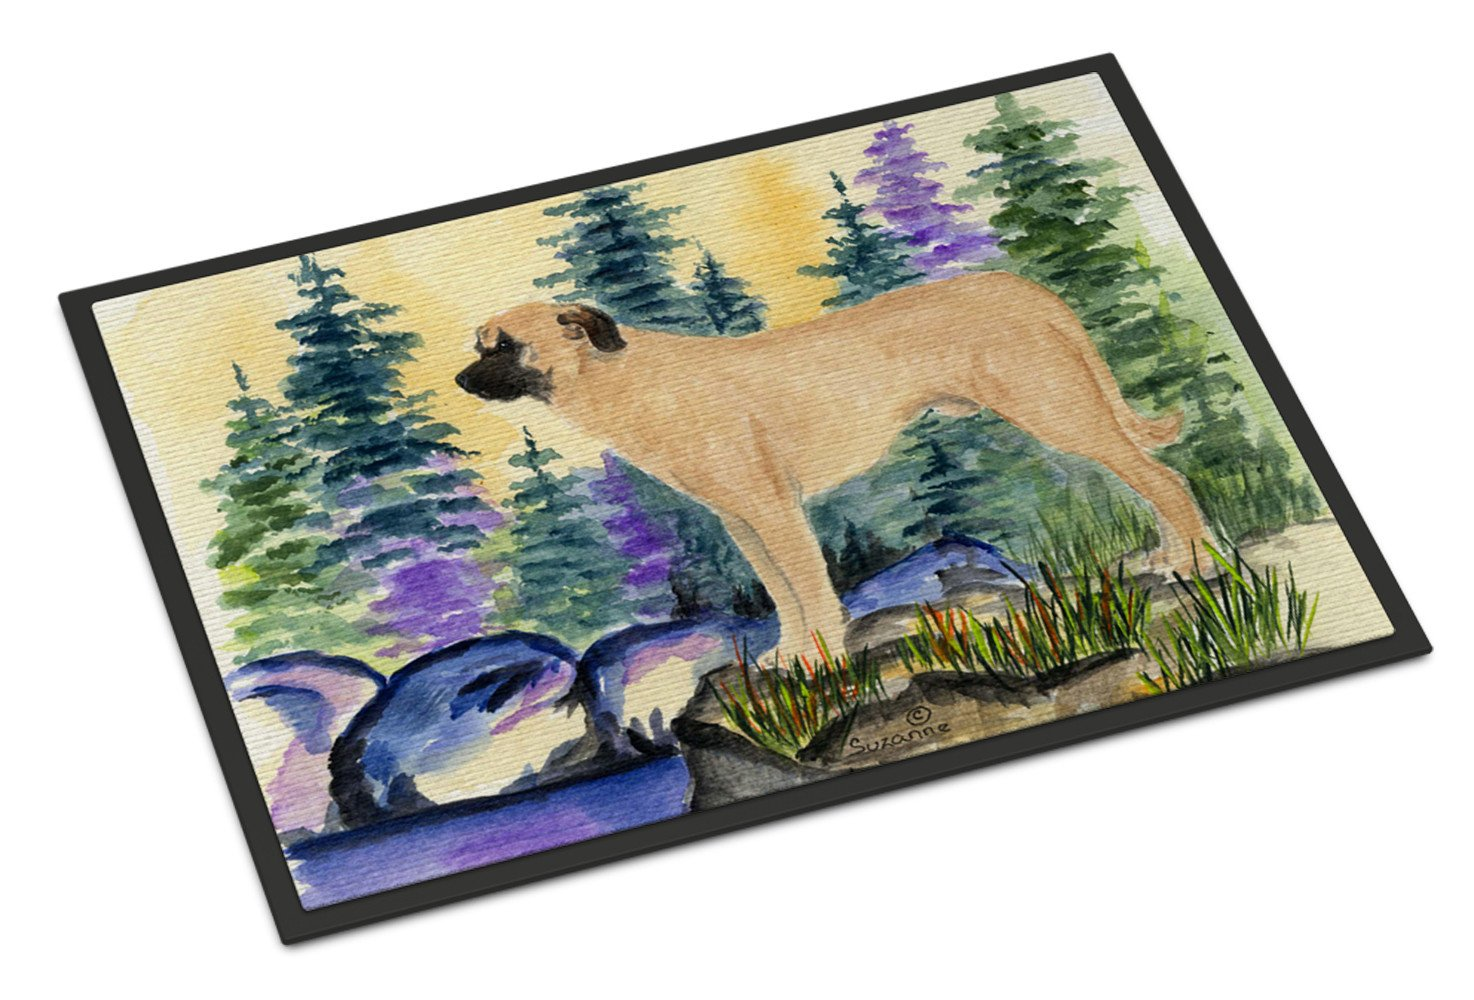 Anatolian Shepherd Indoor Outdoor Mat 18x27 Doormat by Caroline's Treasures